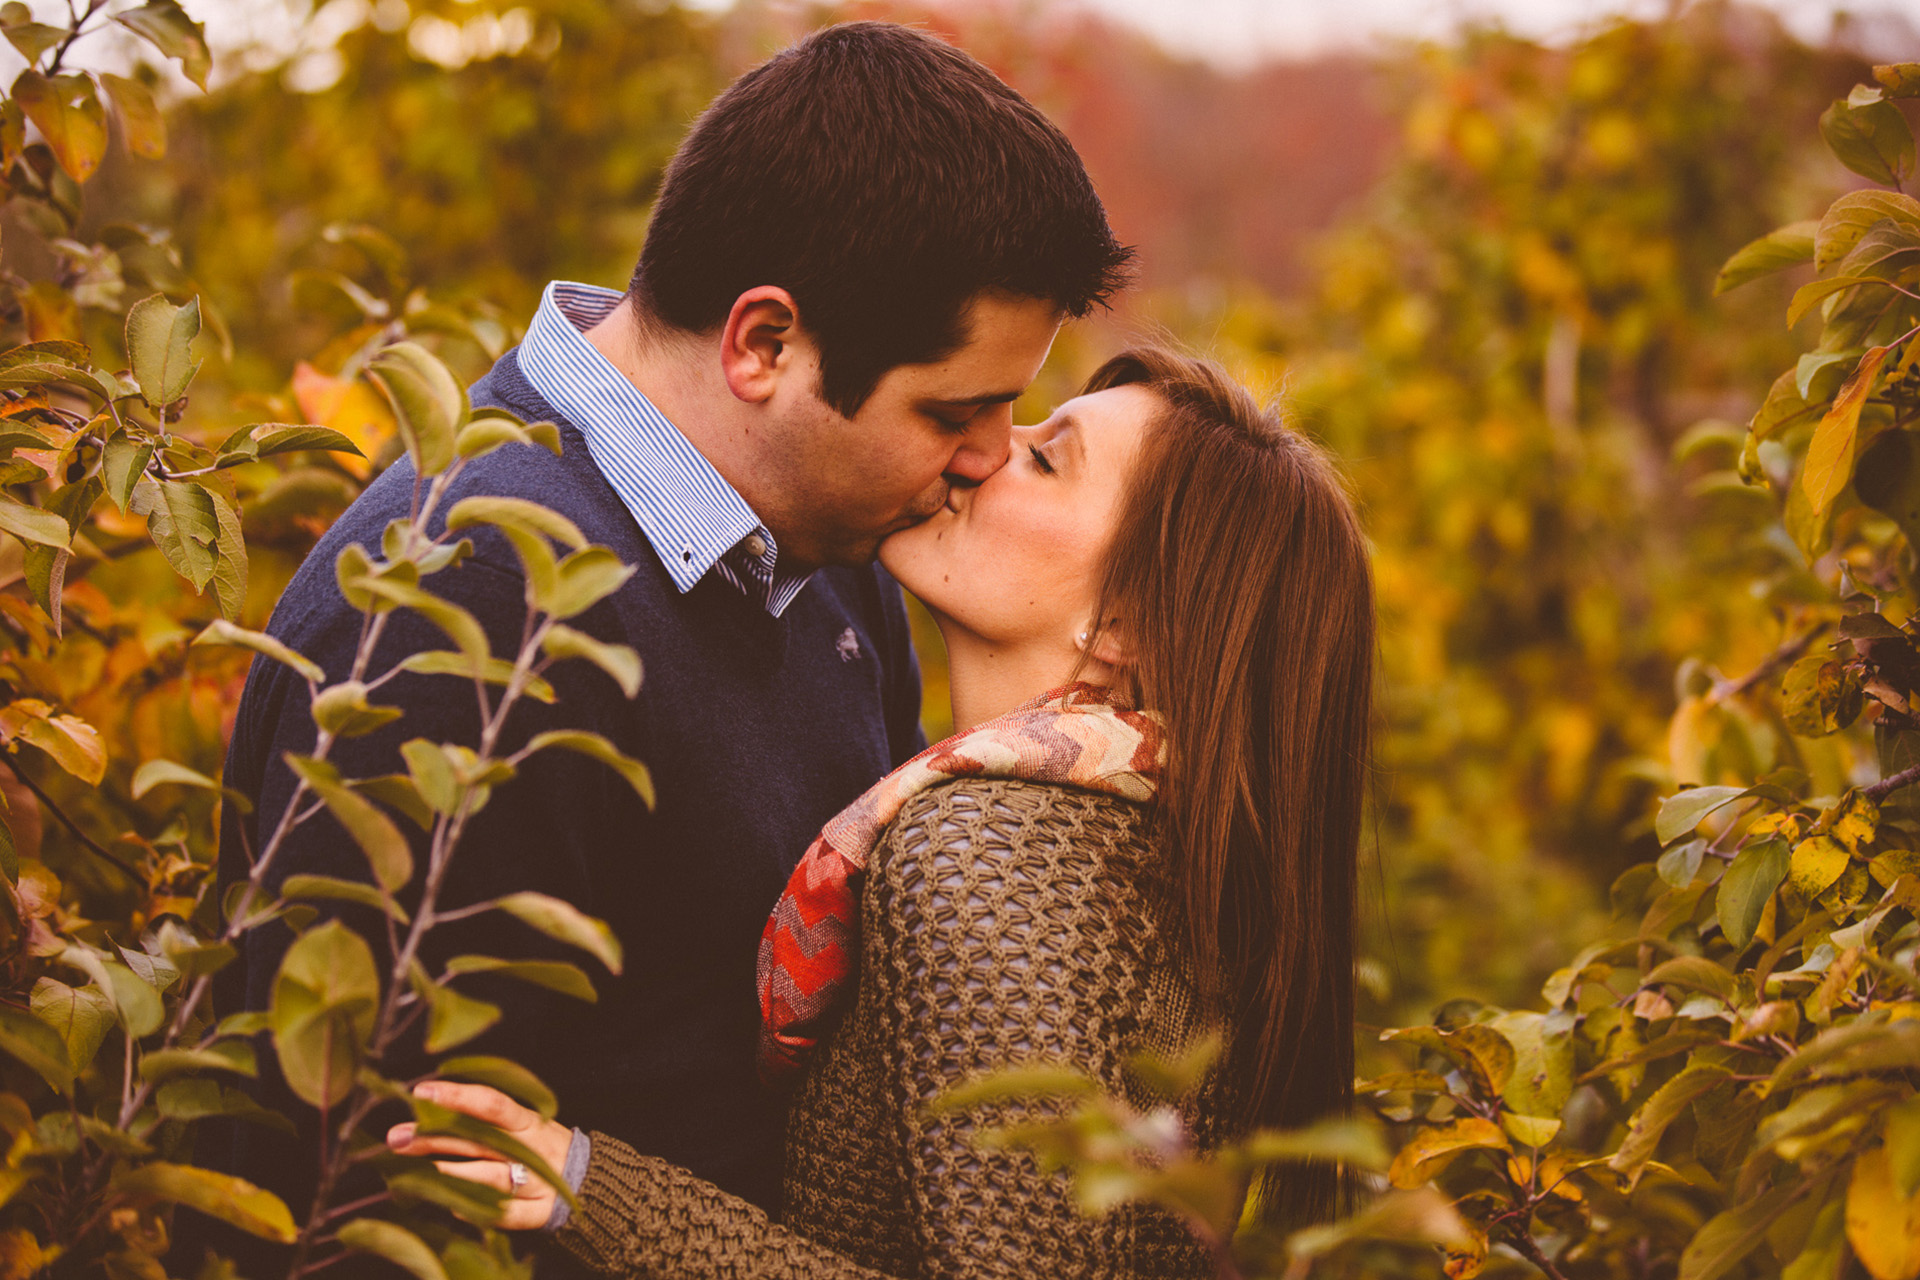 Patterson Fruit Farm Fall Engagement Session Photos in Cleveland 12.jpg